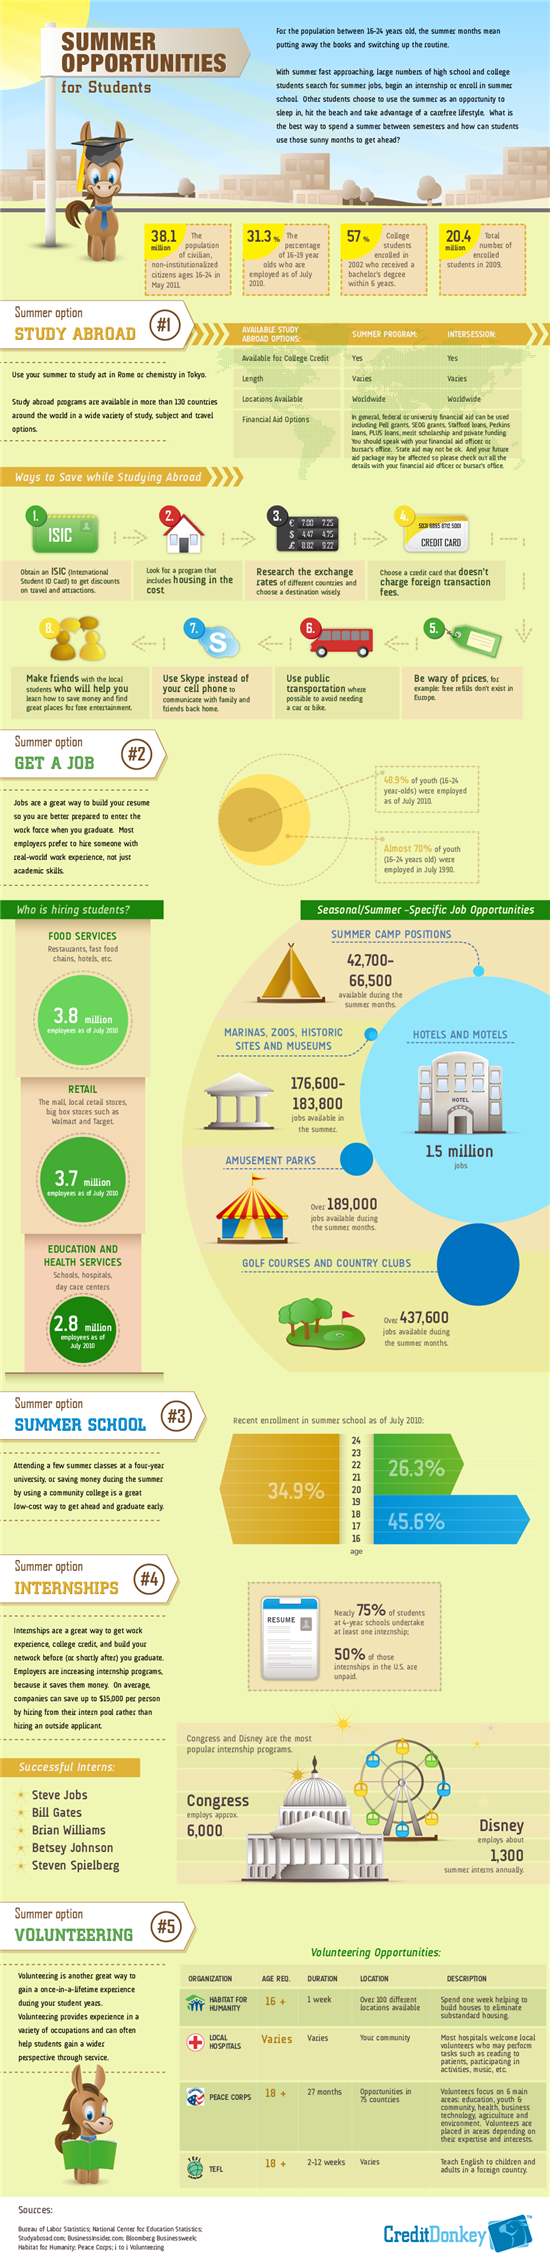 Infographic: Summer Opportunities for Students